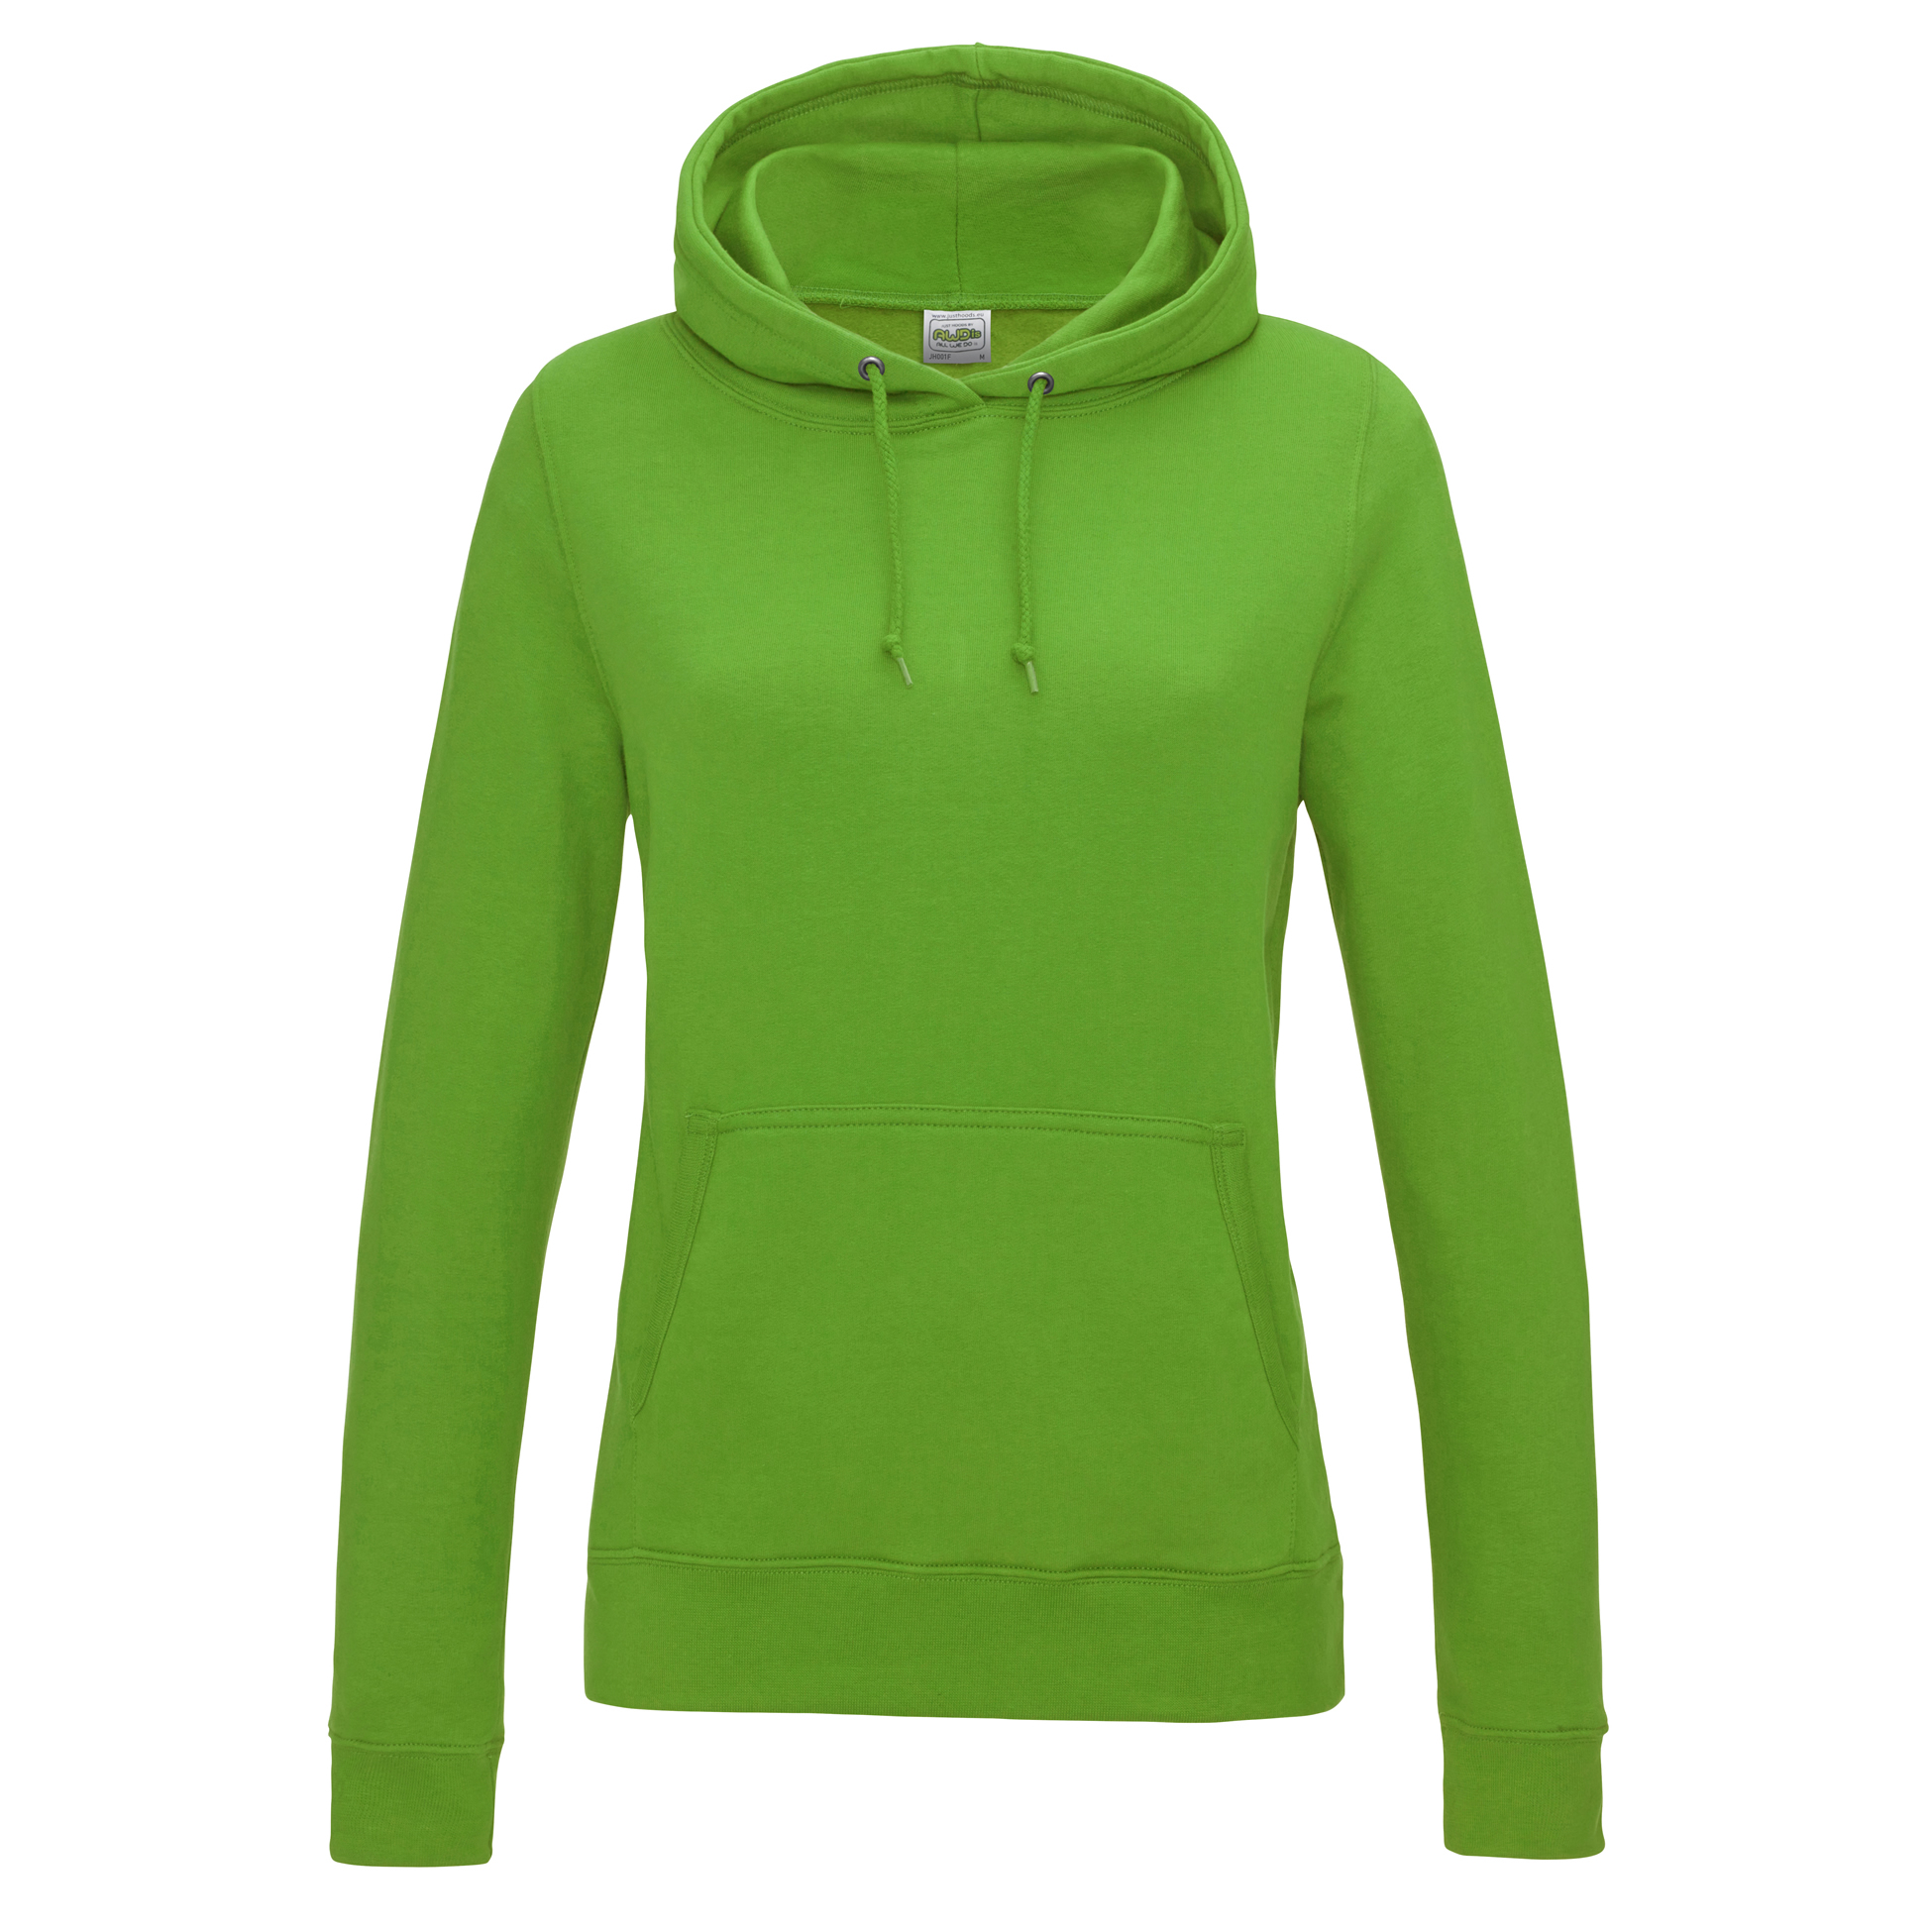 JH001F Lime Green